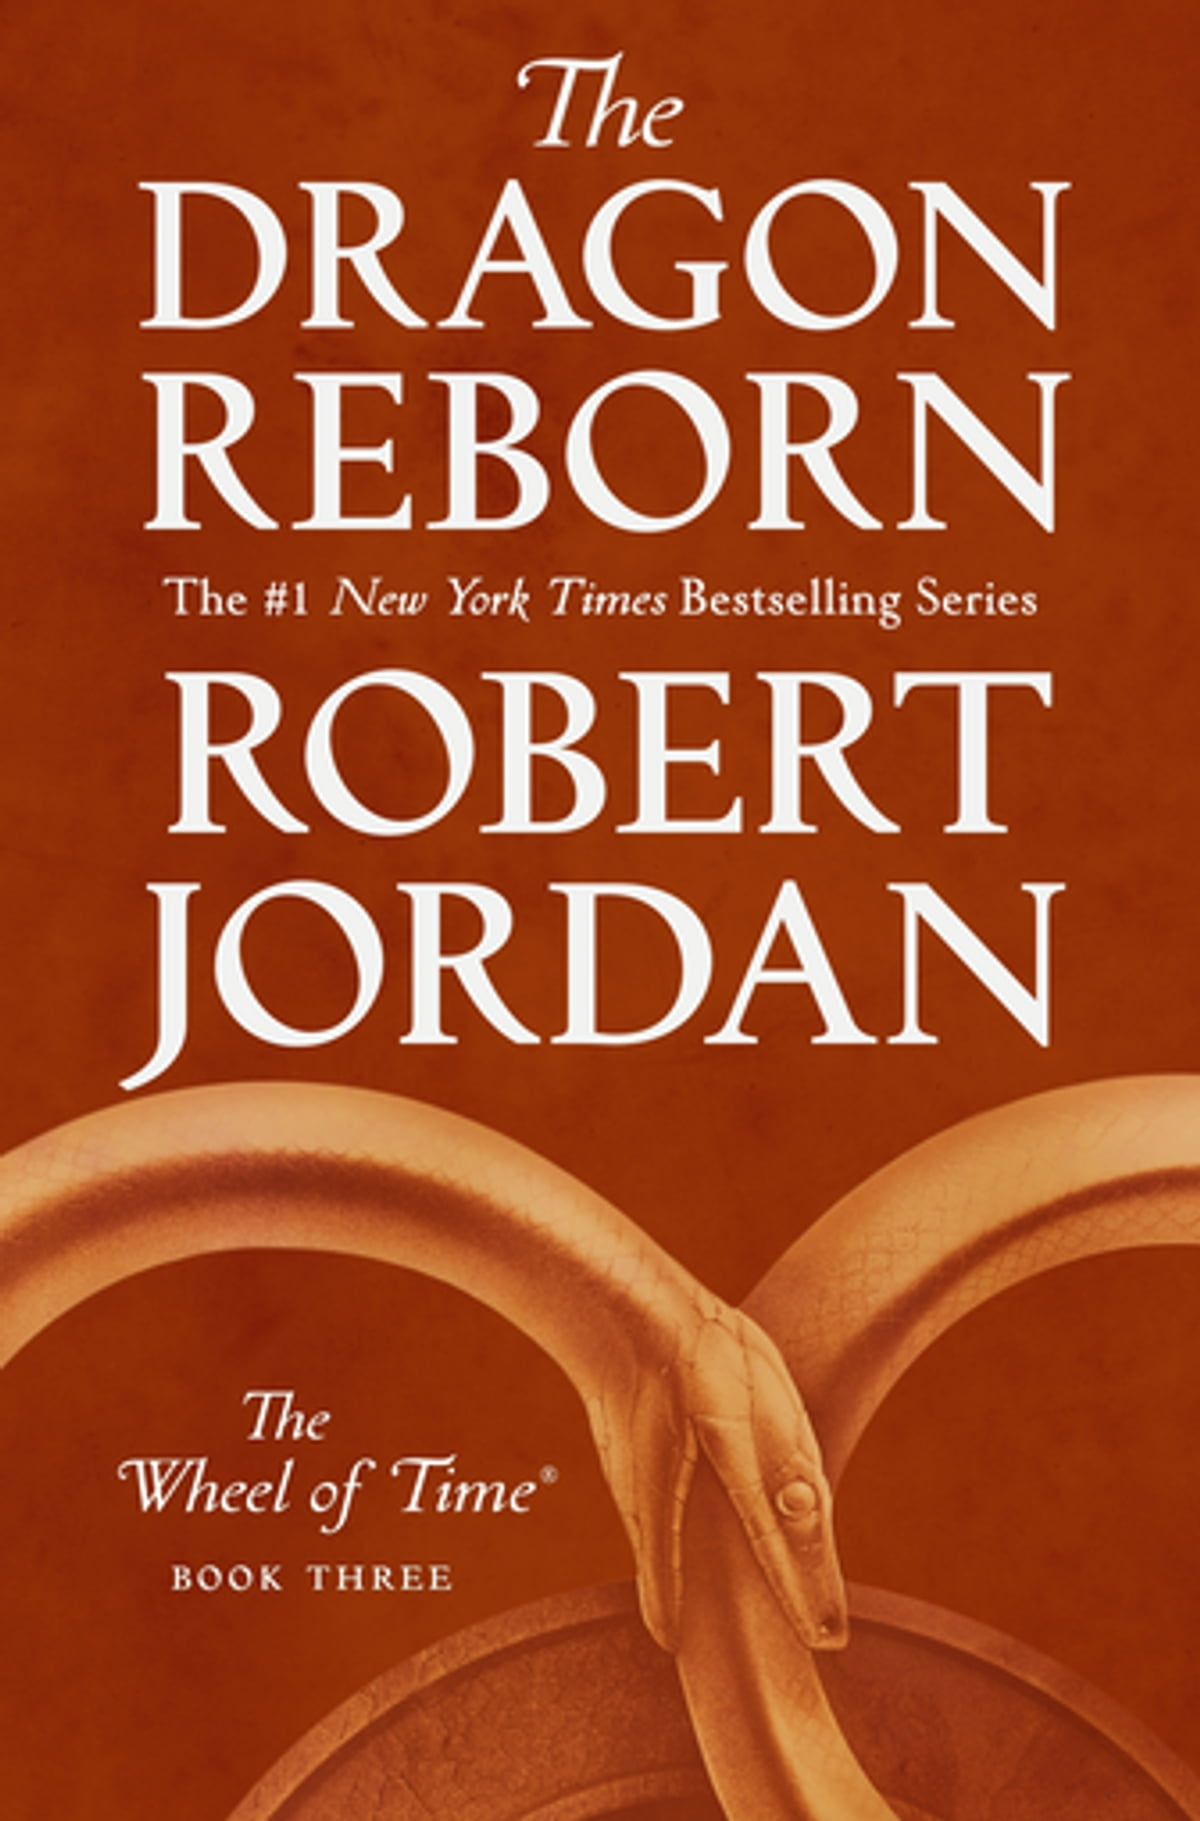 Nuevo Libro De Patrick Rothfuss The Dragon Reborn Ebooks By Robert Jordan Rakuten Kobo